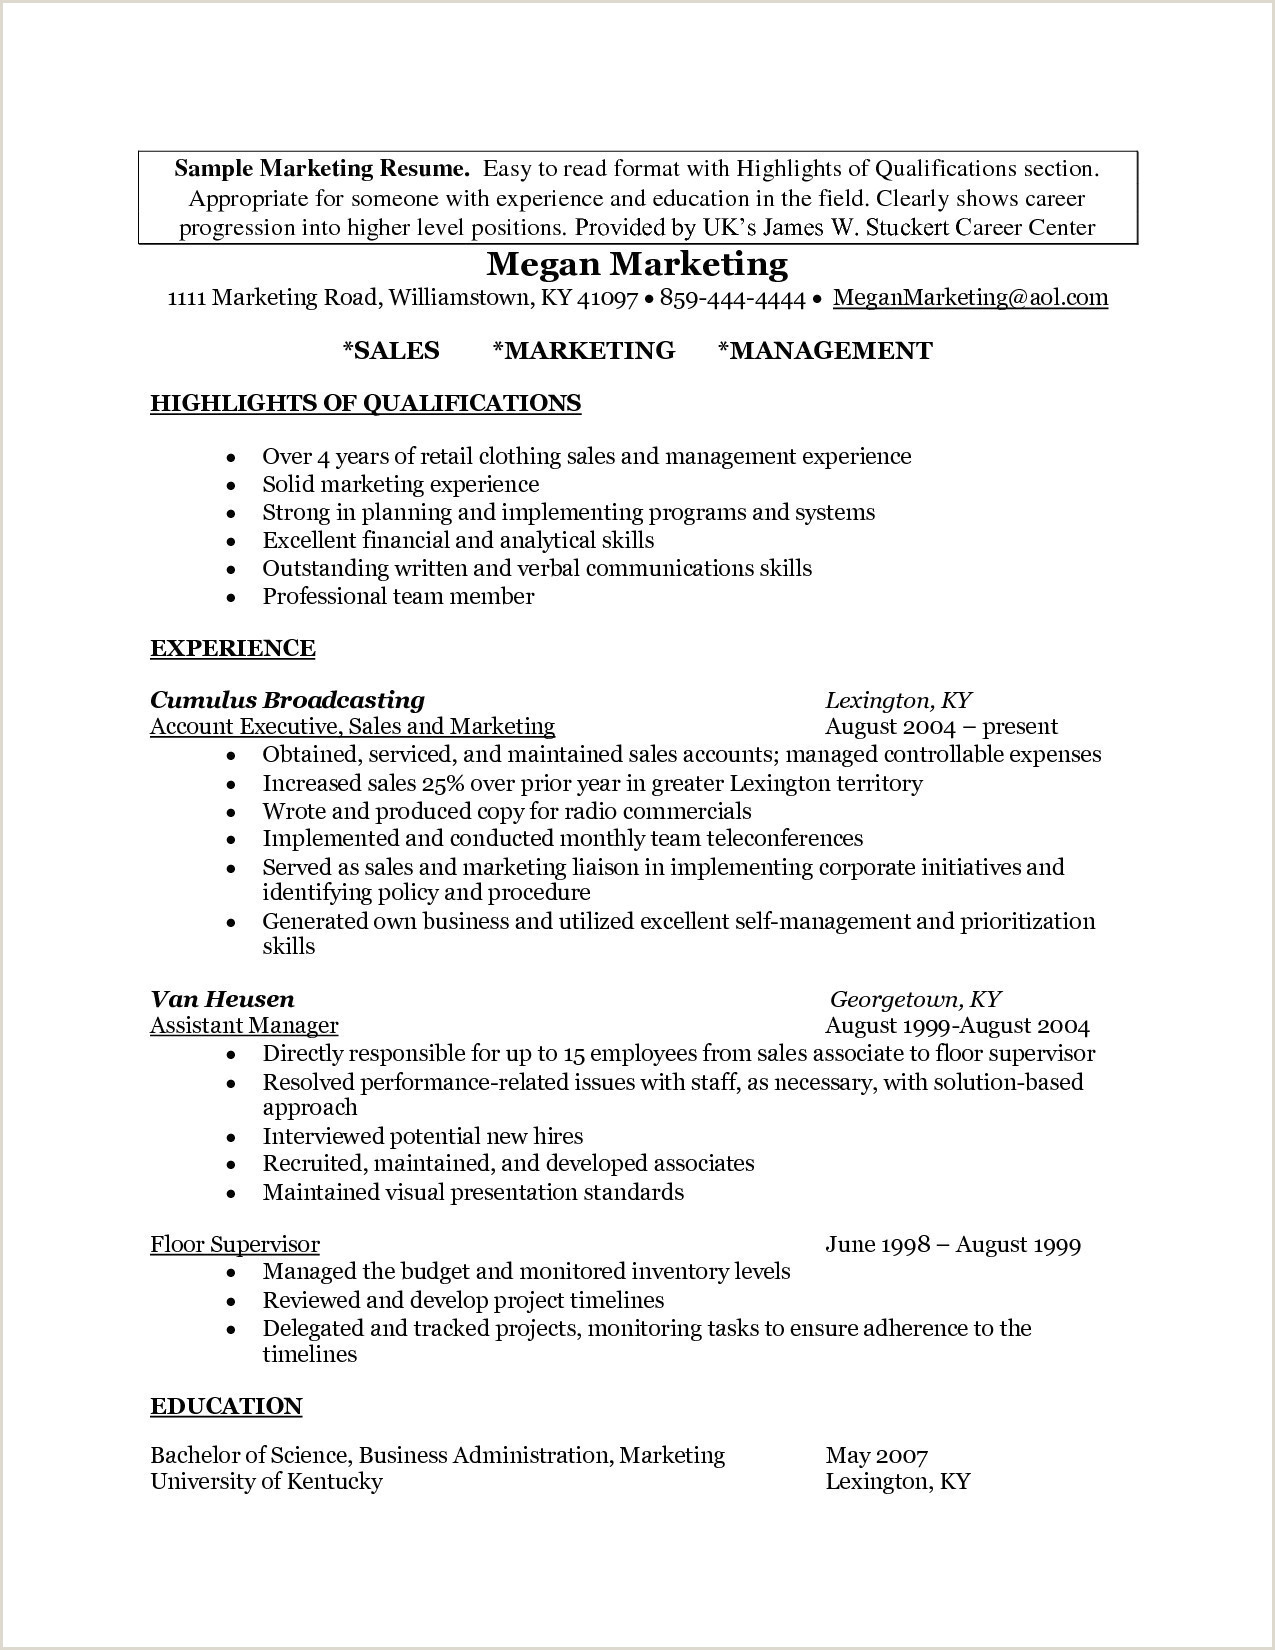 Accounting Cover Letter Template Awesome attendance Letter